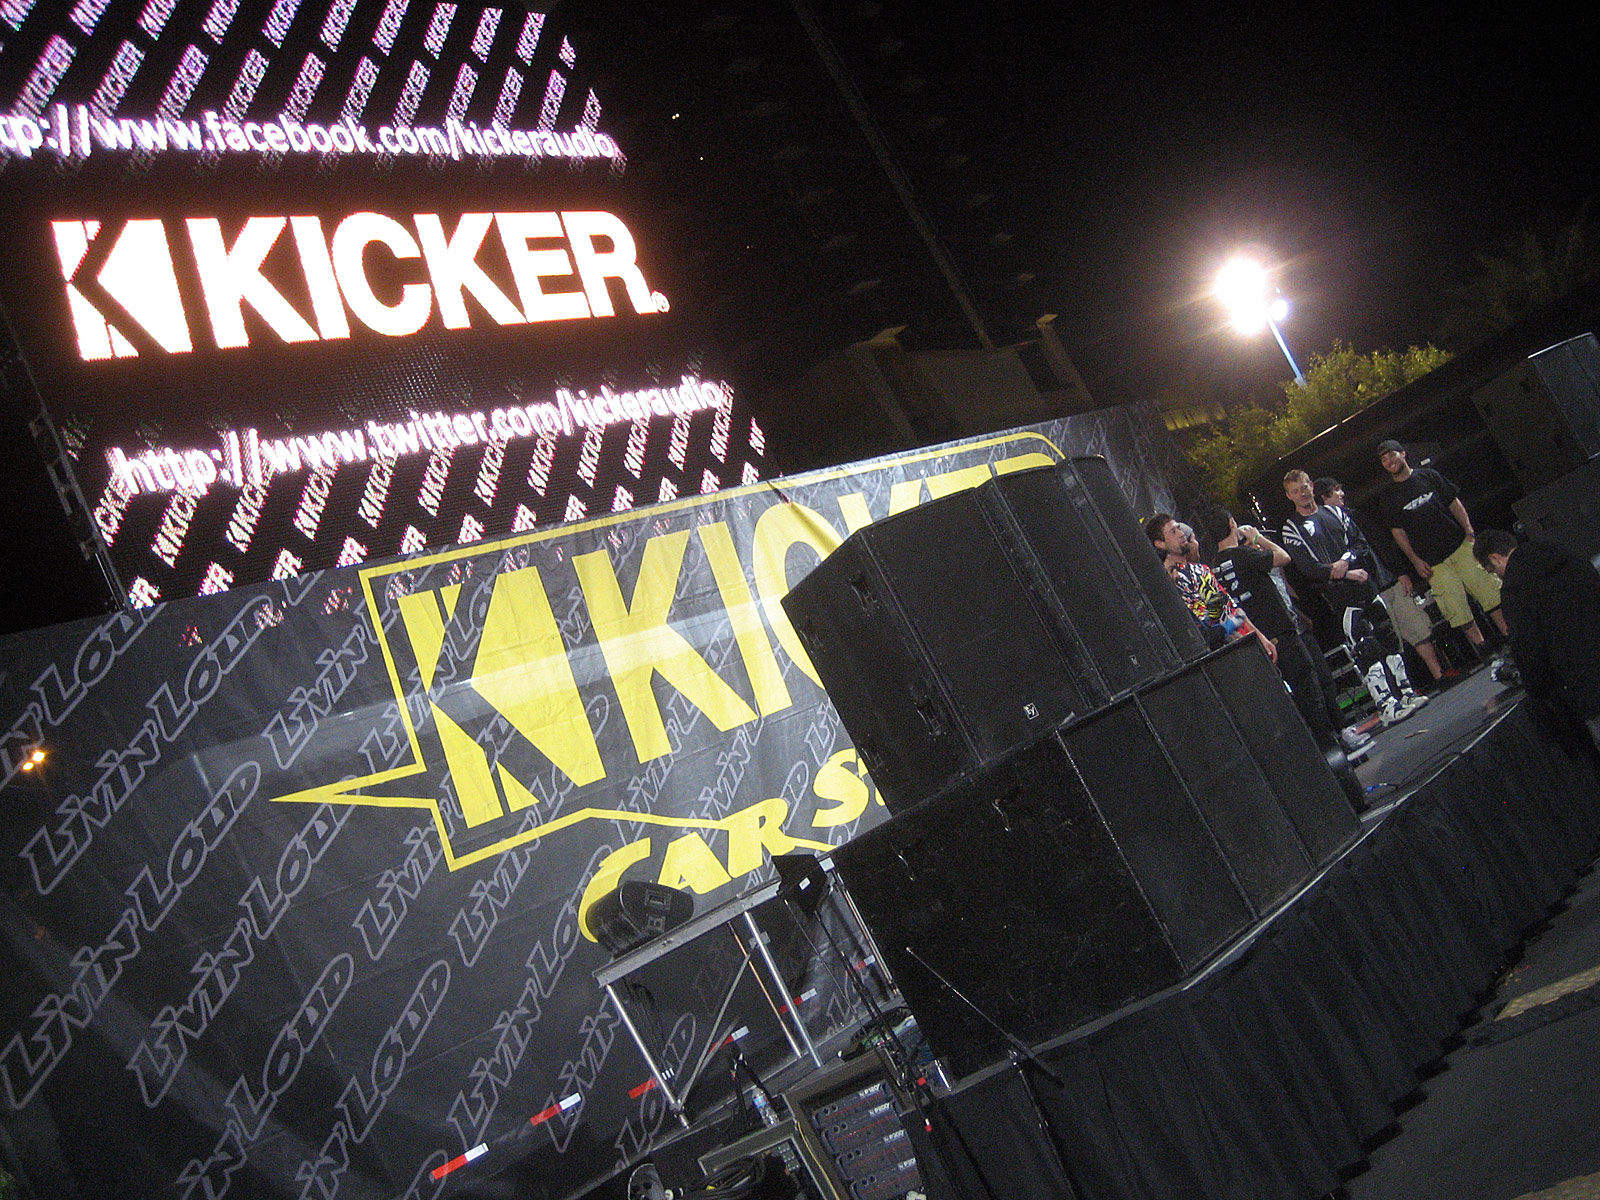 122210or 1322+2010 kicker big air bash+sema show